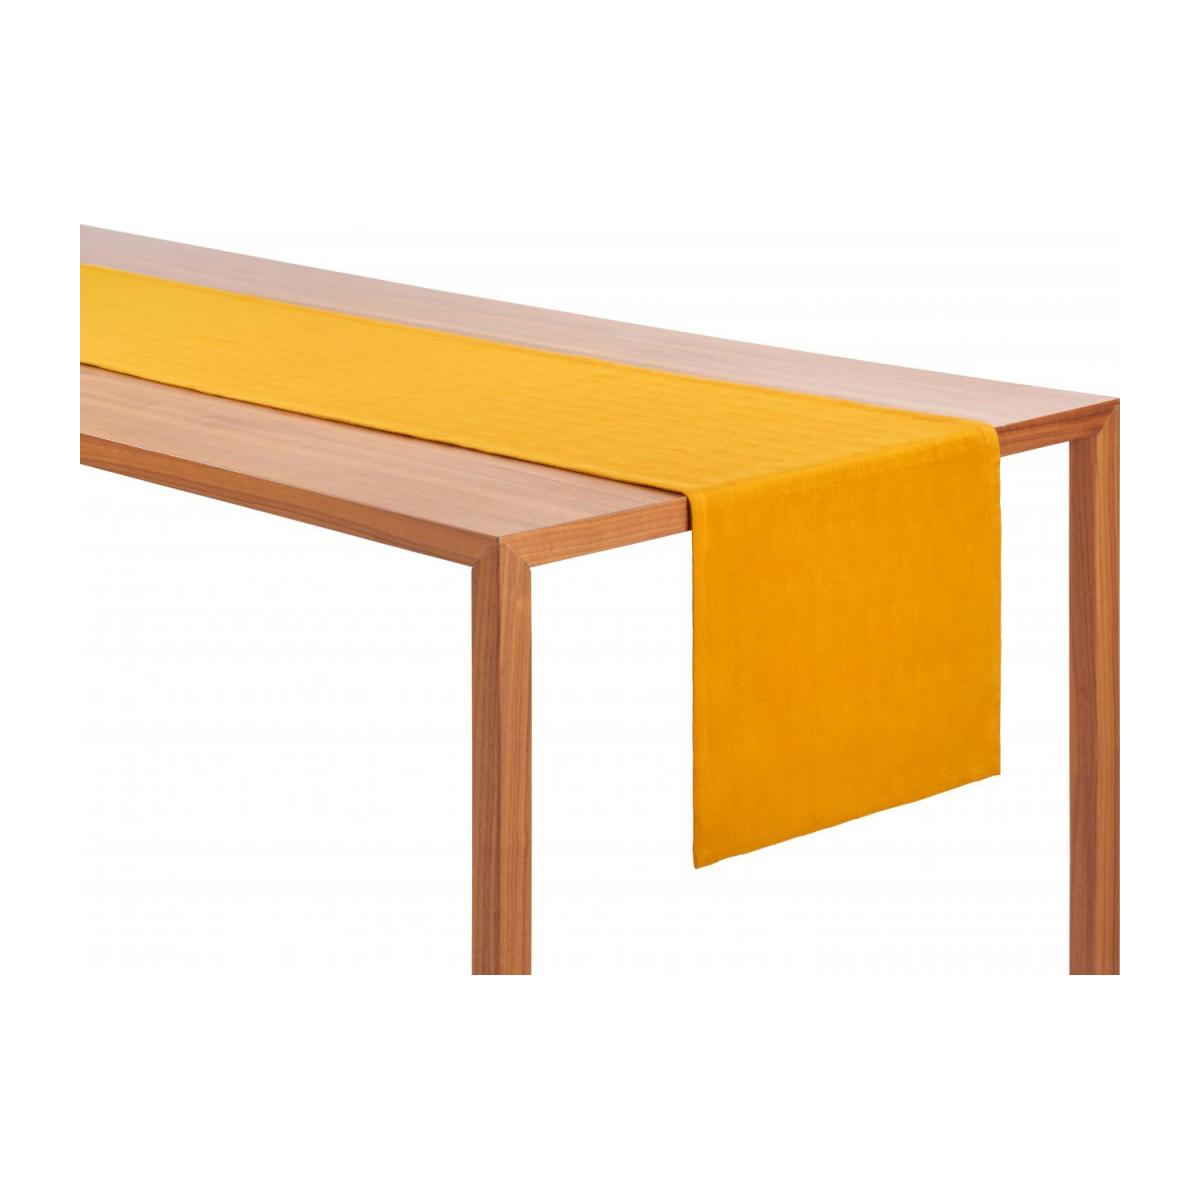 Chemin de table 200x40cm en coton jaune moutarde n°3